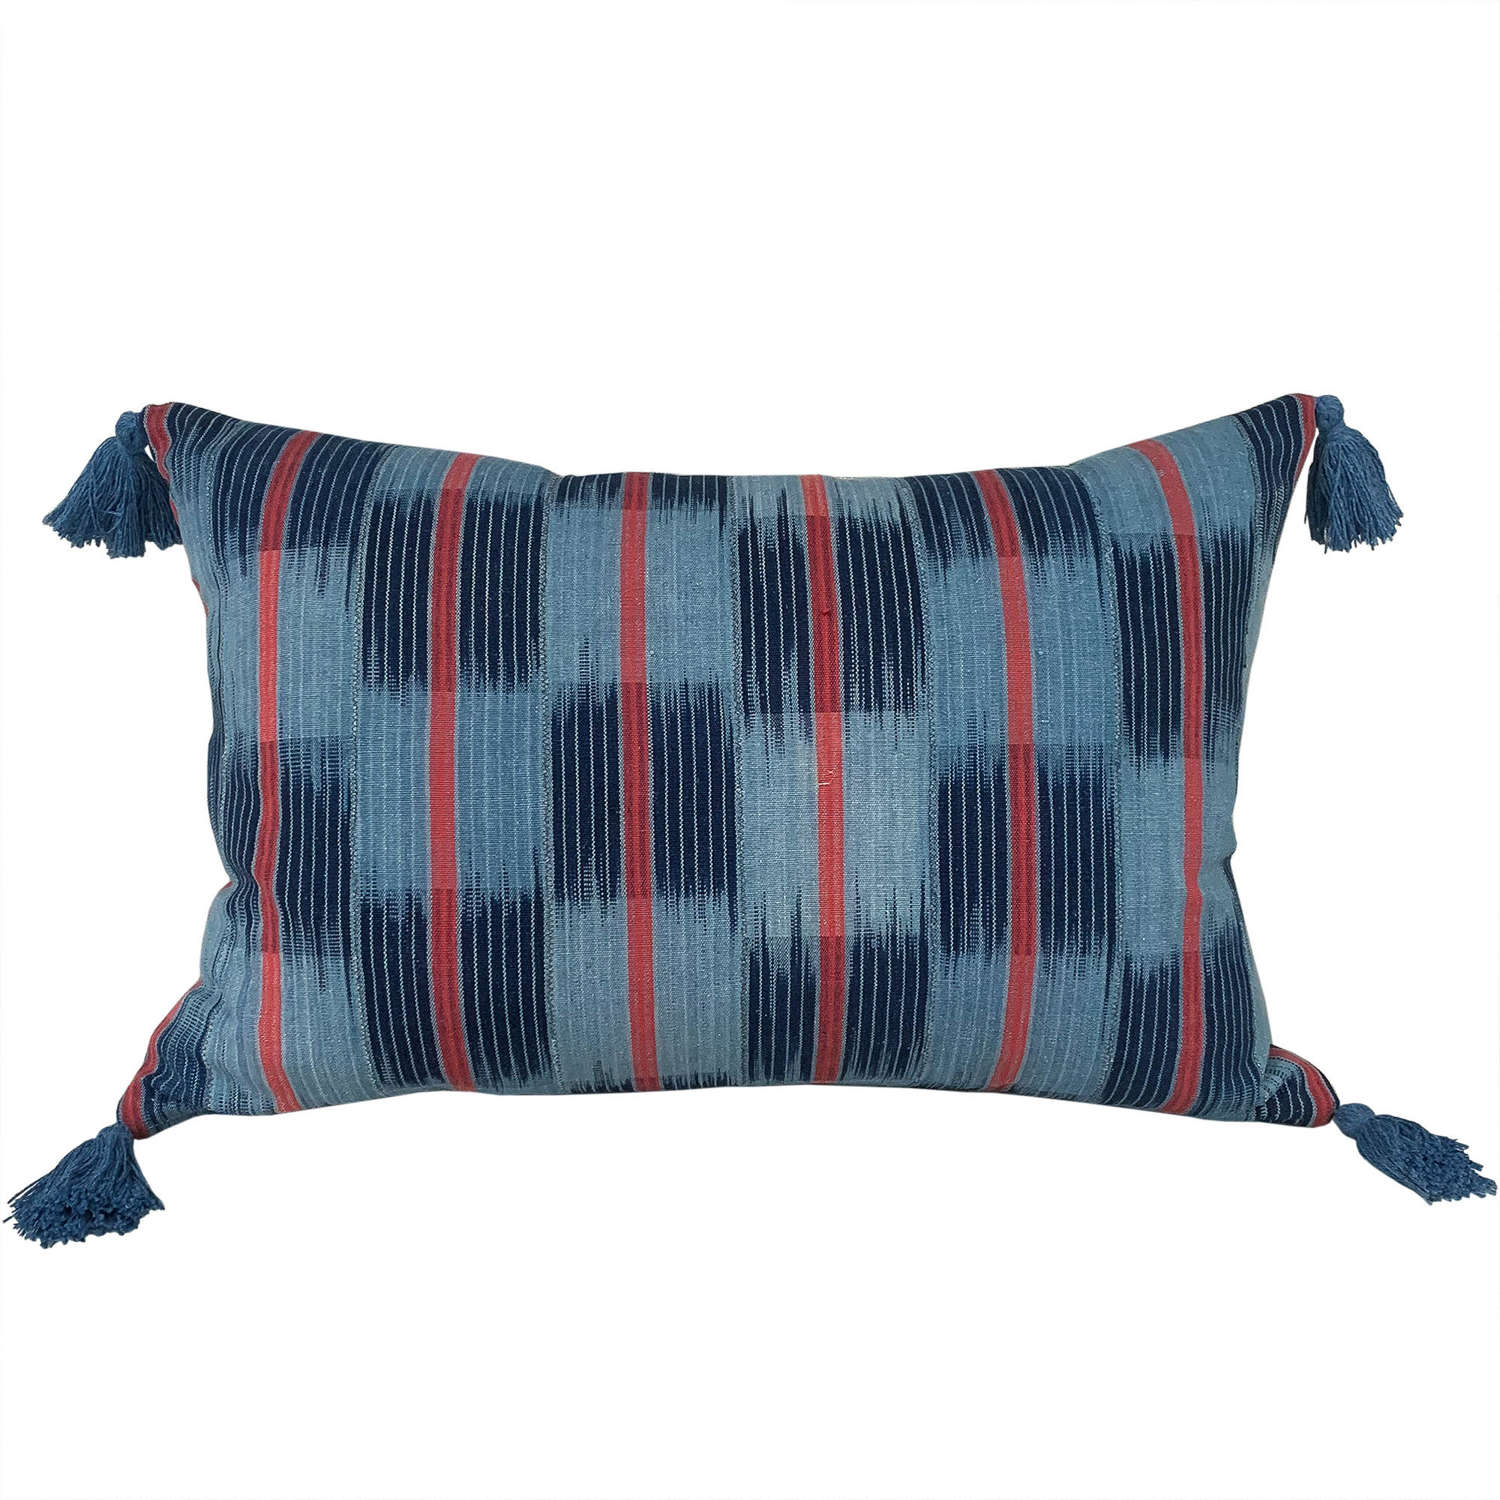 Dioula cushions with tassels